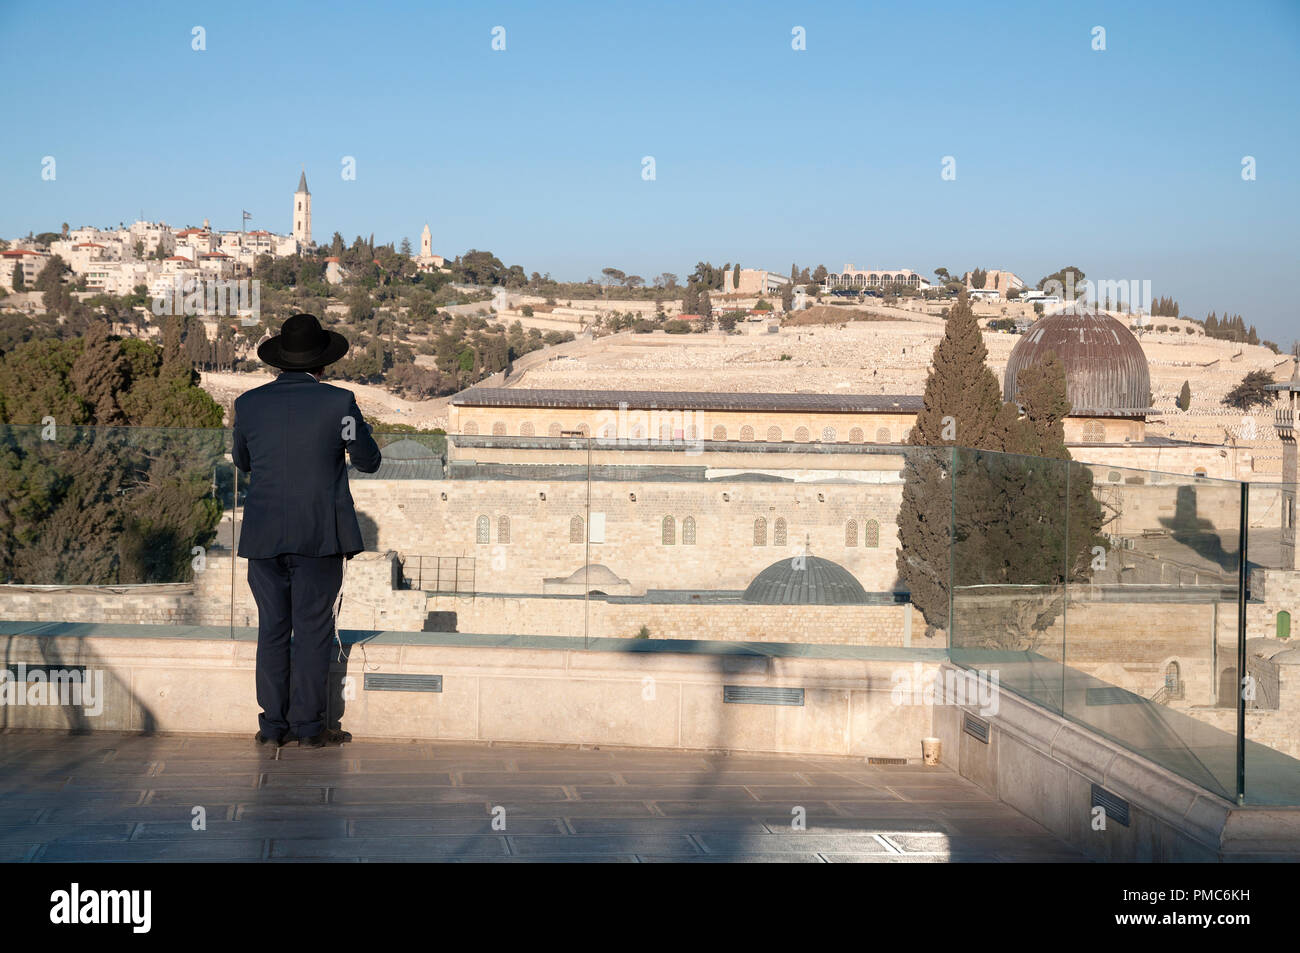 Prayer in Jerusalem old city - Stock Image